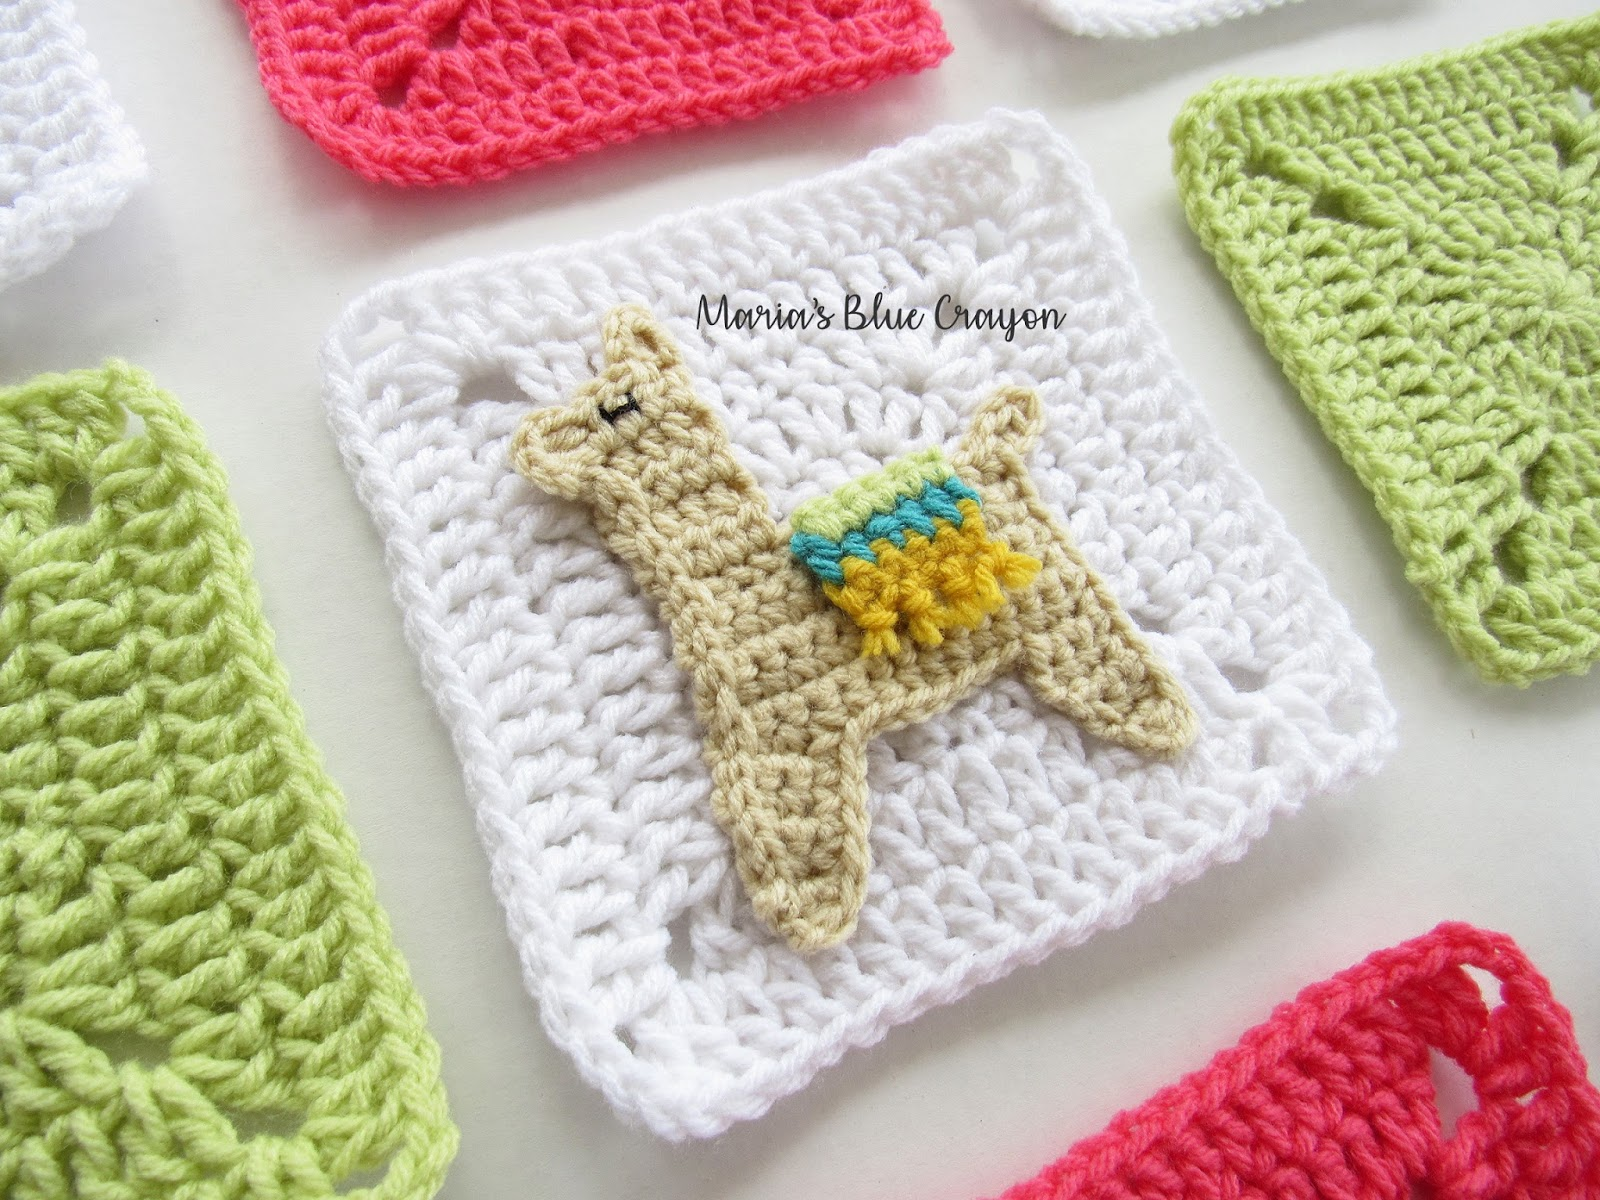 Crochet Llama Applique and Granny Square - Free Crochet pattern ...